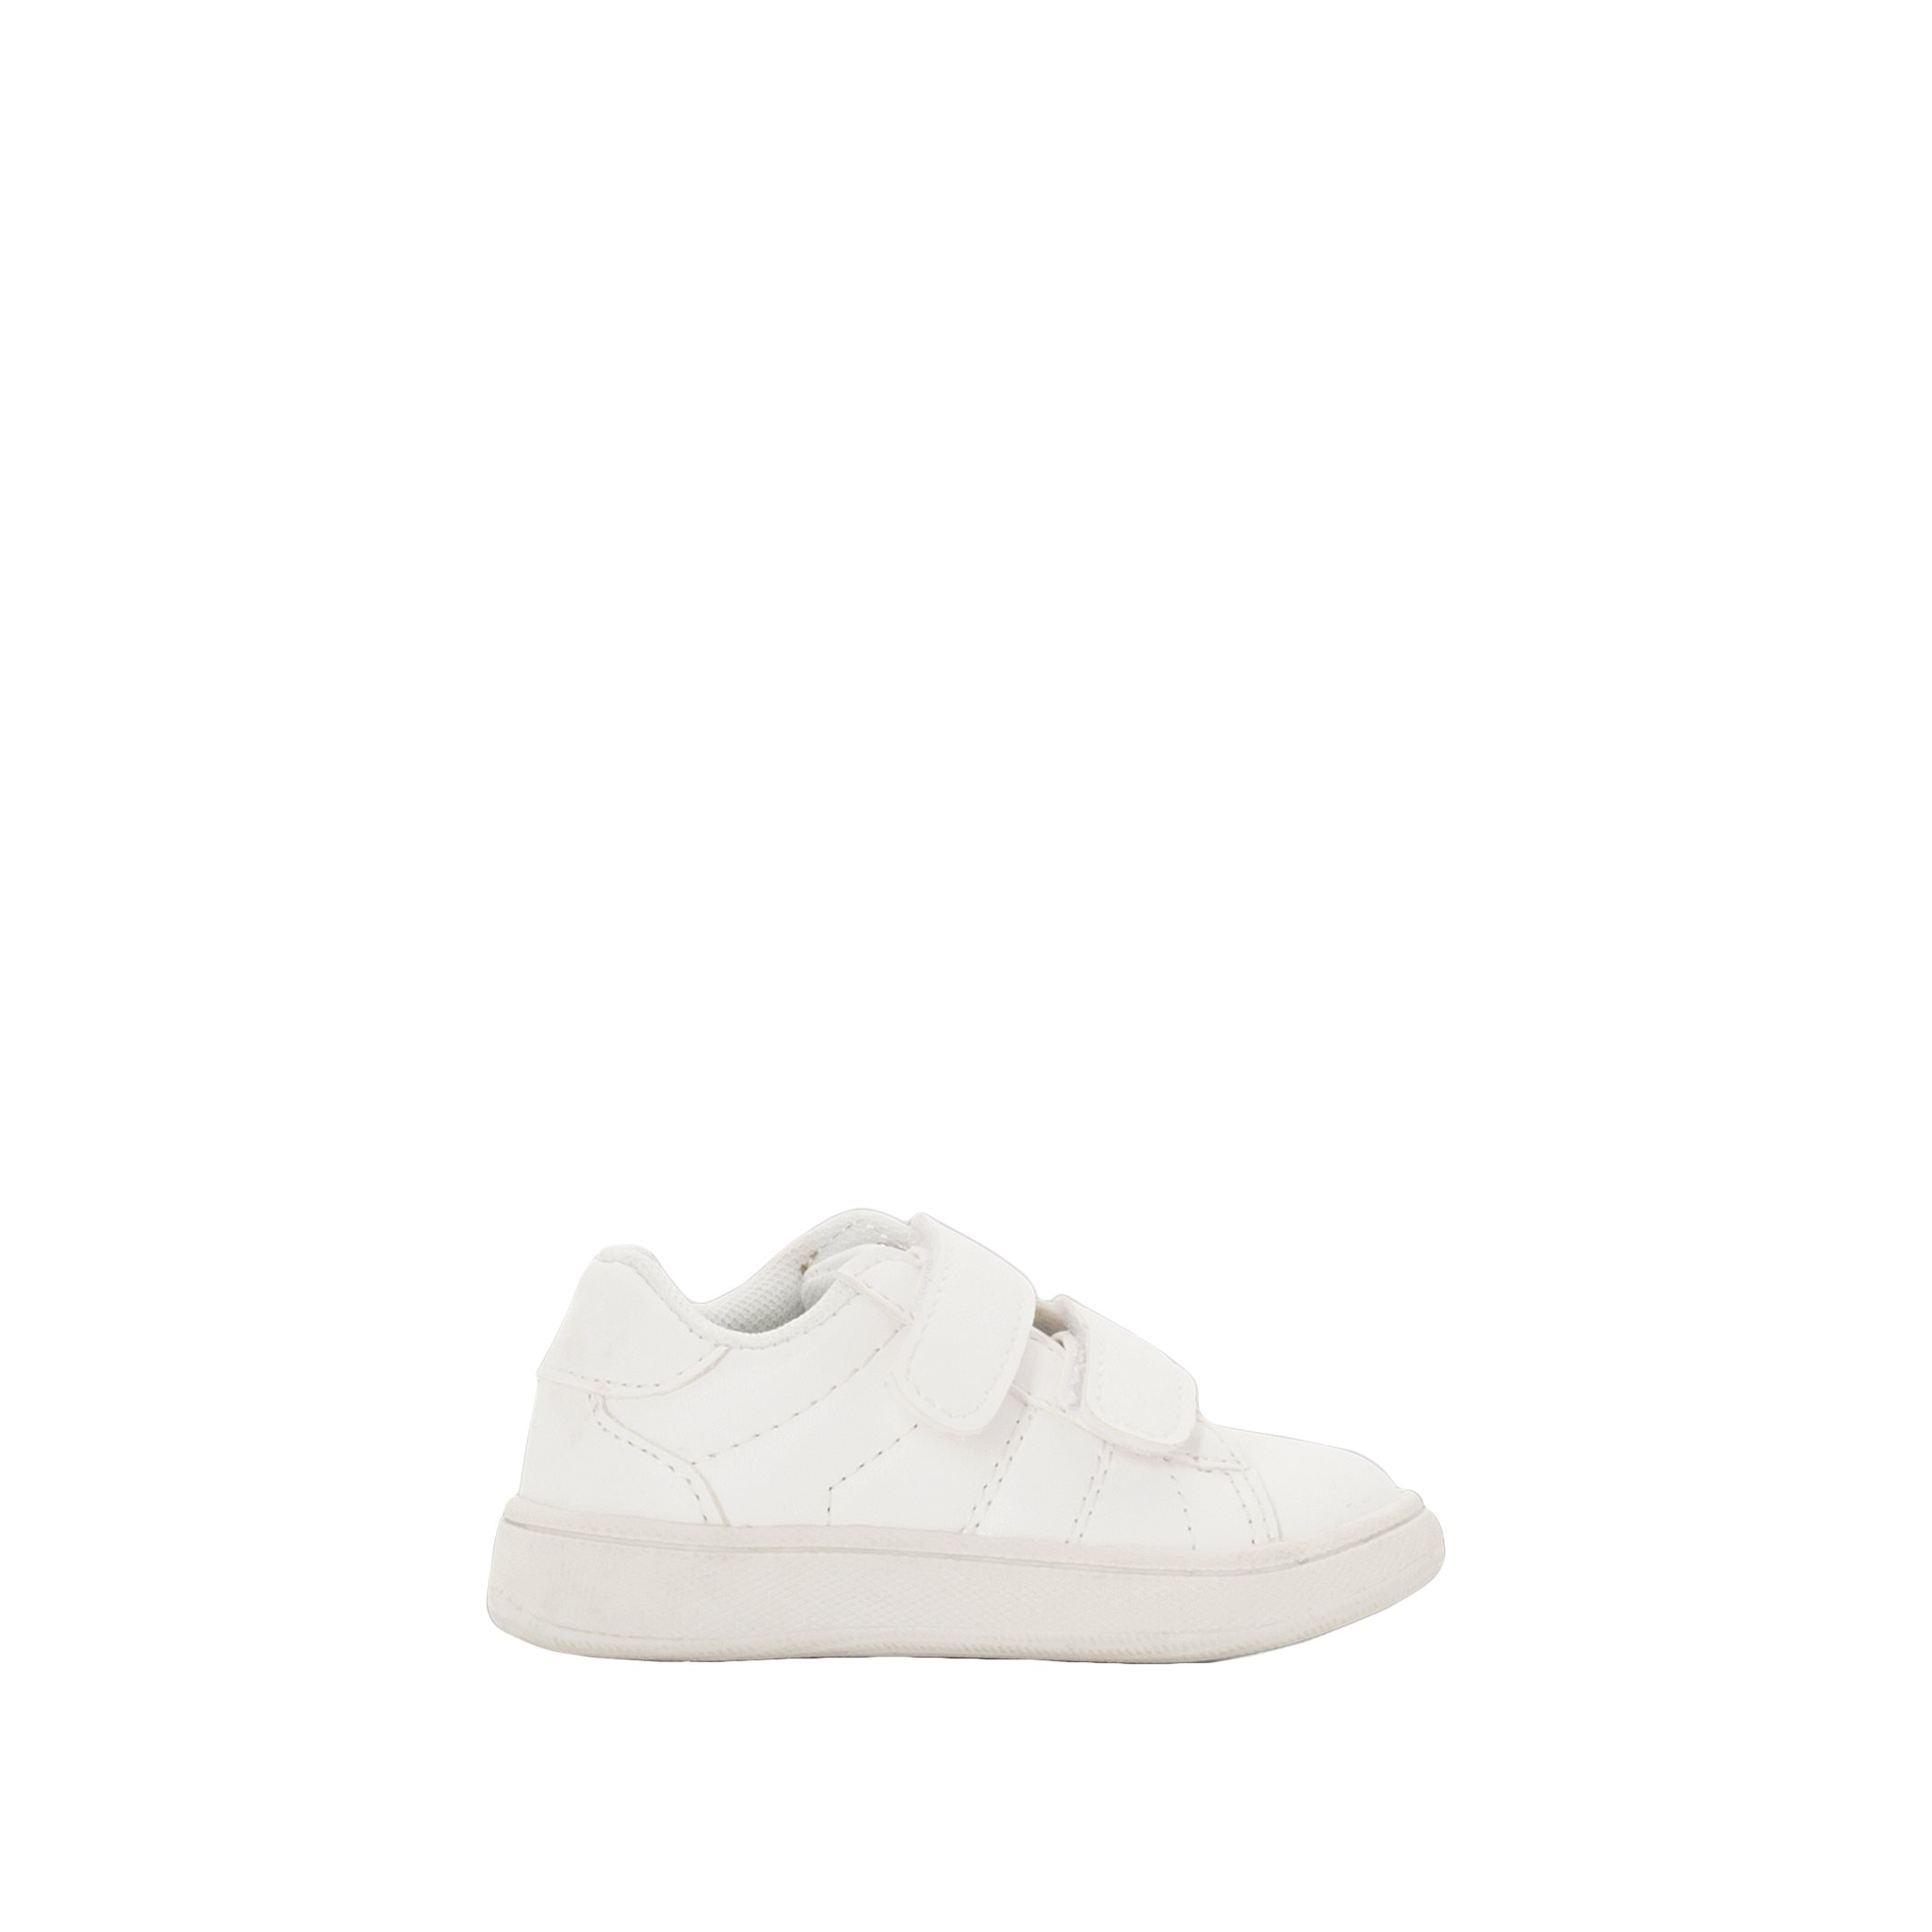 La Redoute Collections Low Top Touch 'N' Close Trainers White Size 19